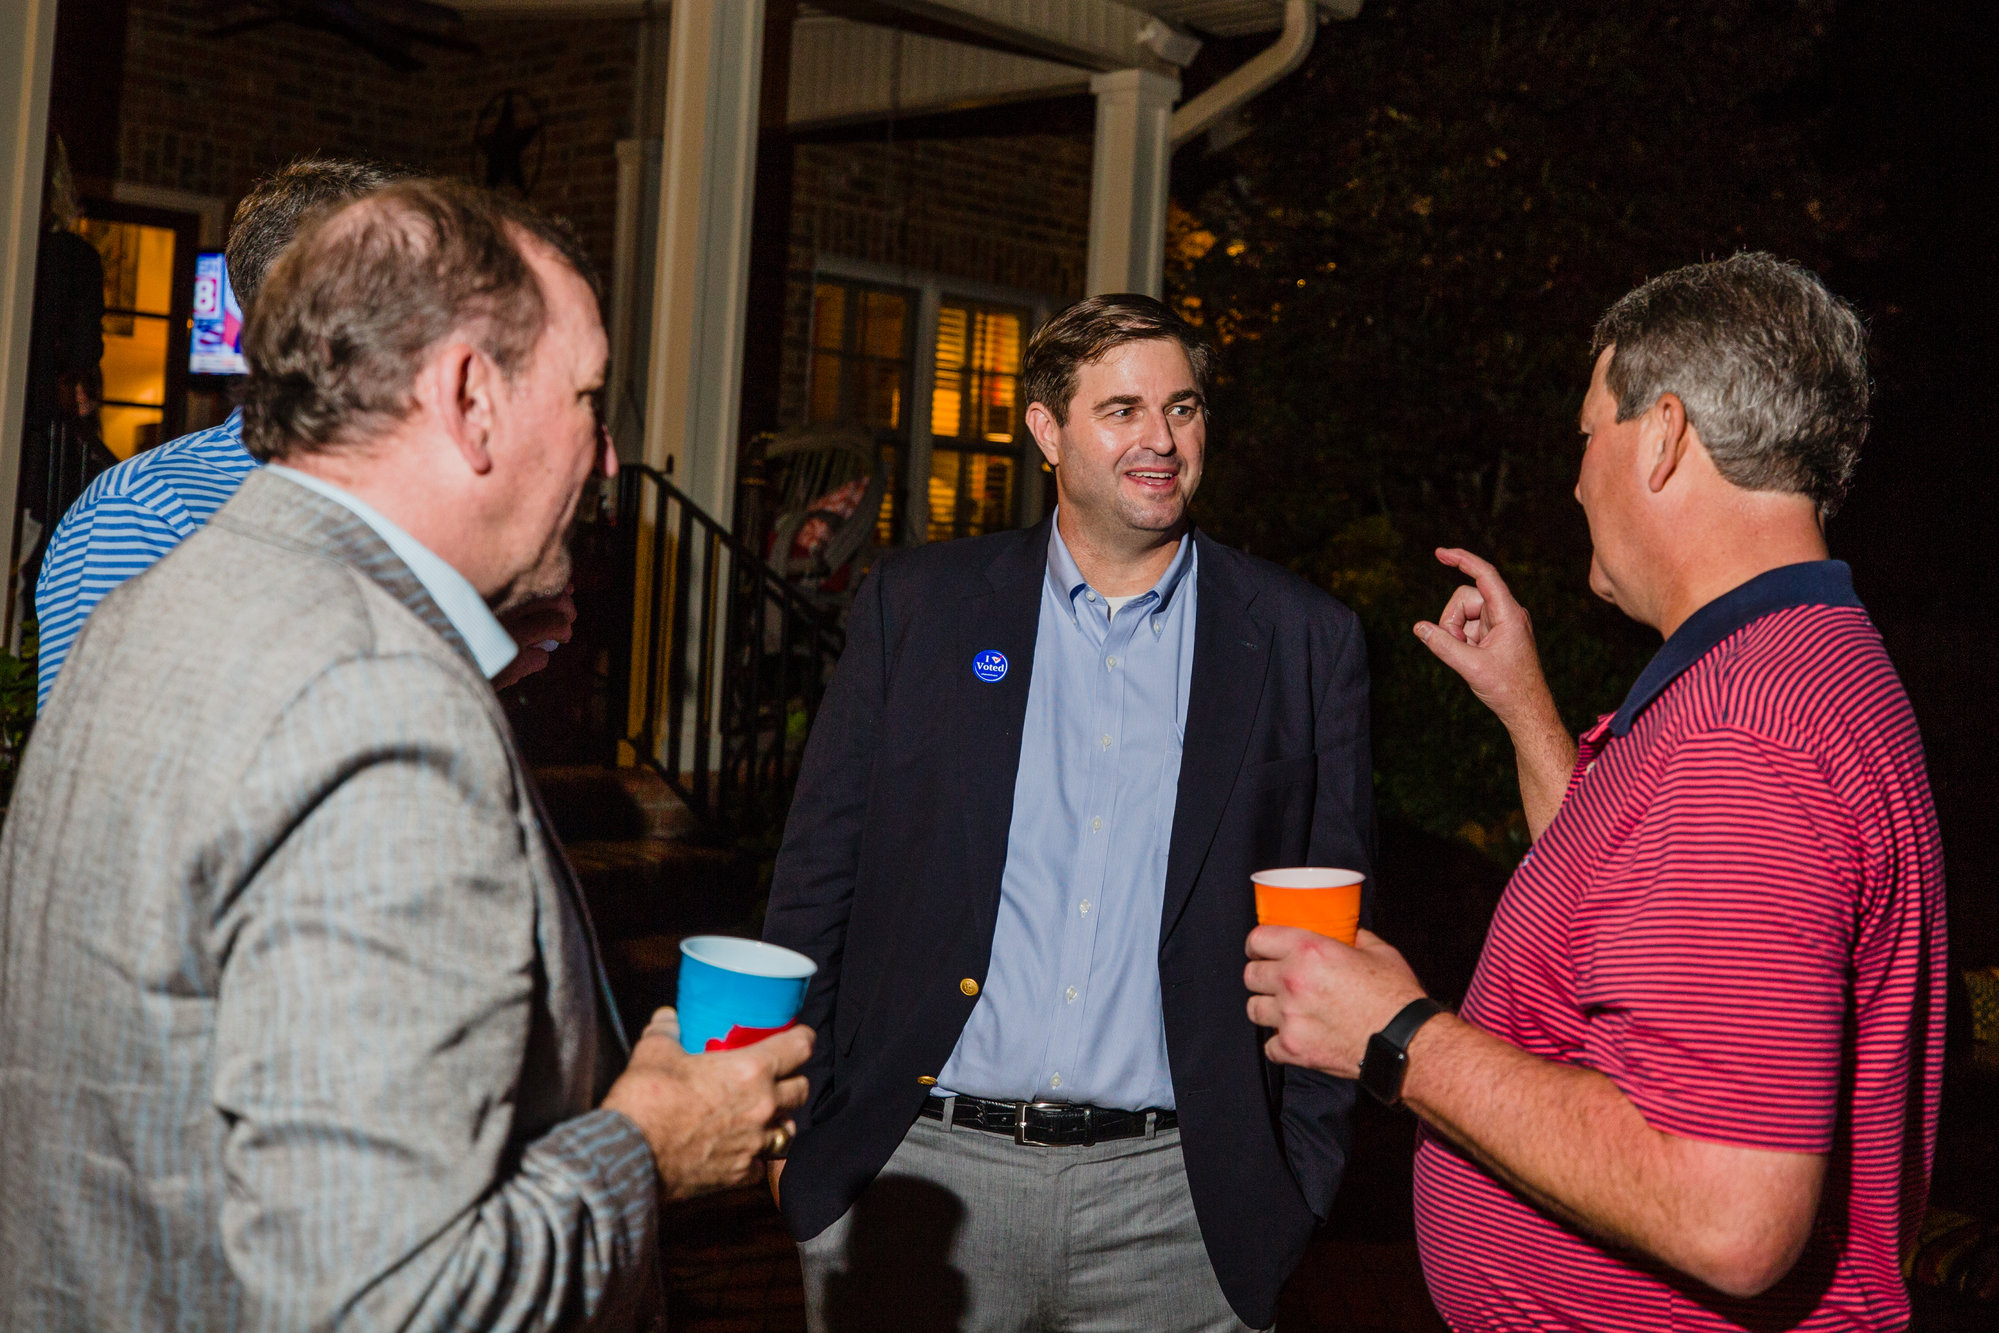 Rep. Murrell Smith, R-Sumter, talks with friends and constituents on election night on Nov. 6. He handily beat the first opponent he has had since being elected to the House in 2001, securing 82 percent of the votes in District 67 against Libertarian Brandon Humphries.